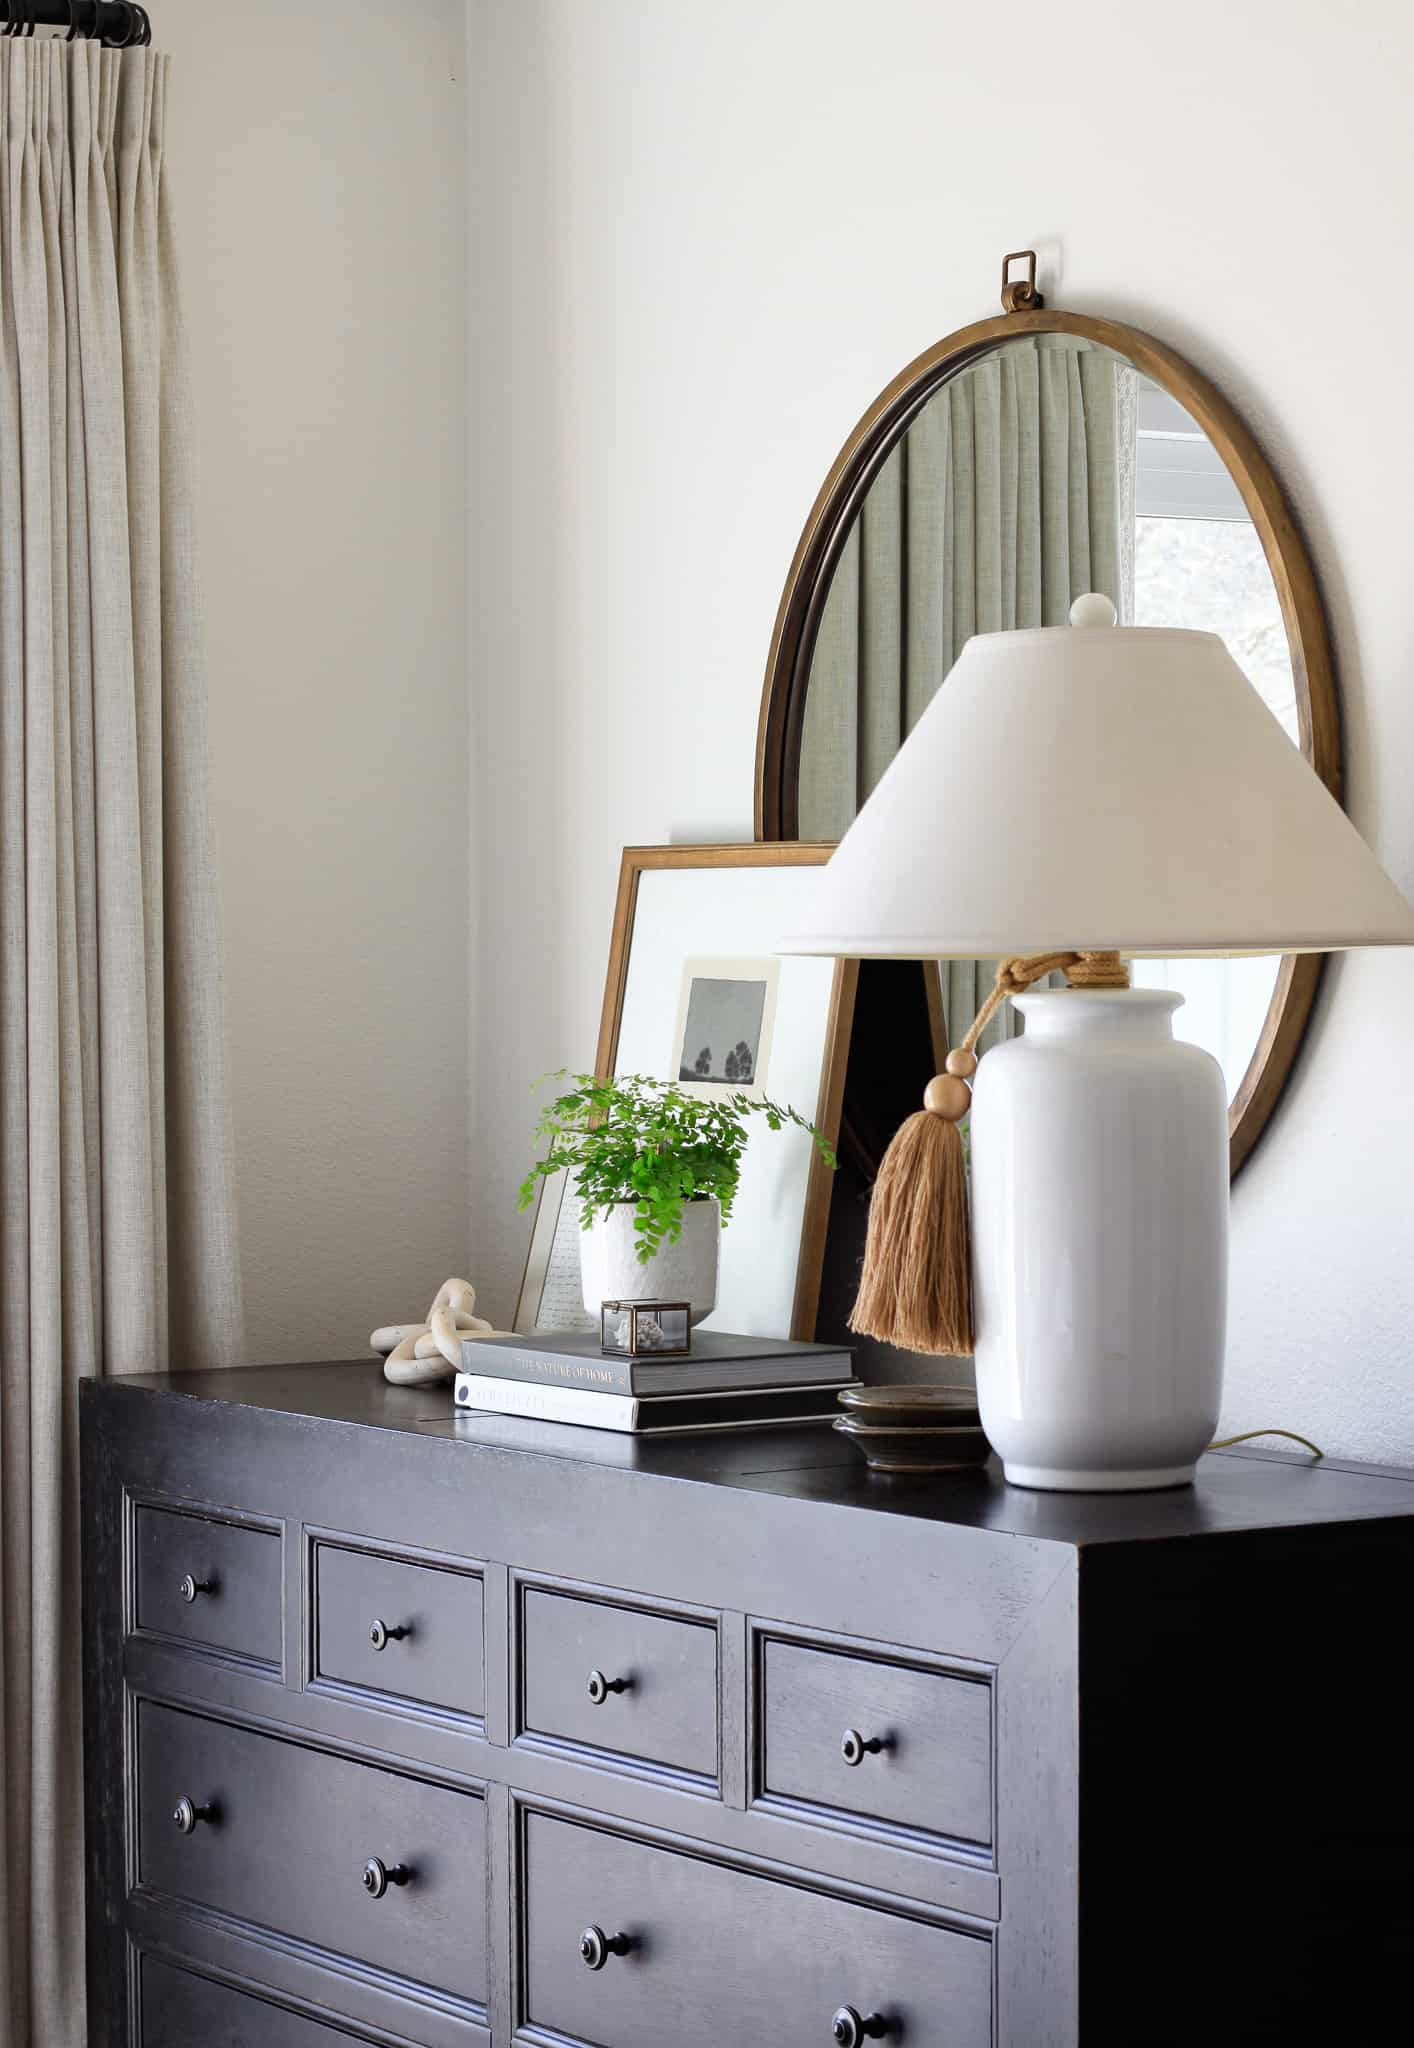 side view of black dresser styled with round mirror, white lamp, and art and plant